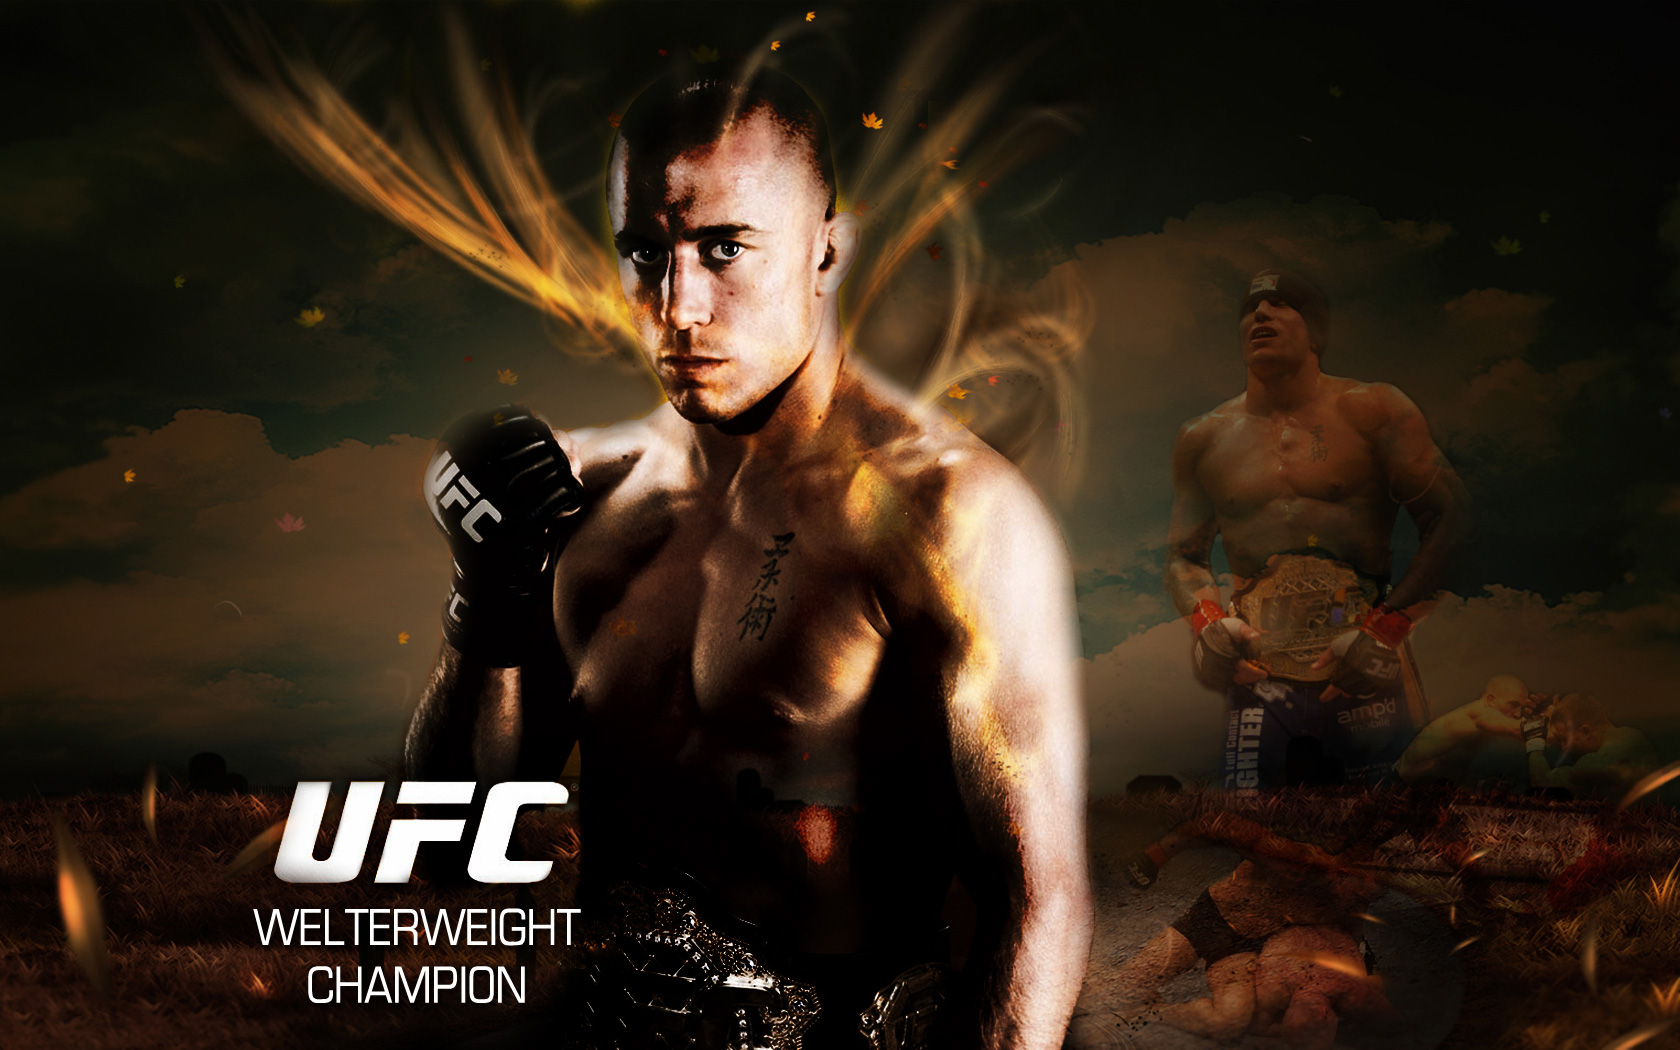 Anybody need a wallpaper page 2 outside the ufc ufc fight posted image voltagebd Image collections